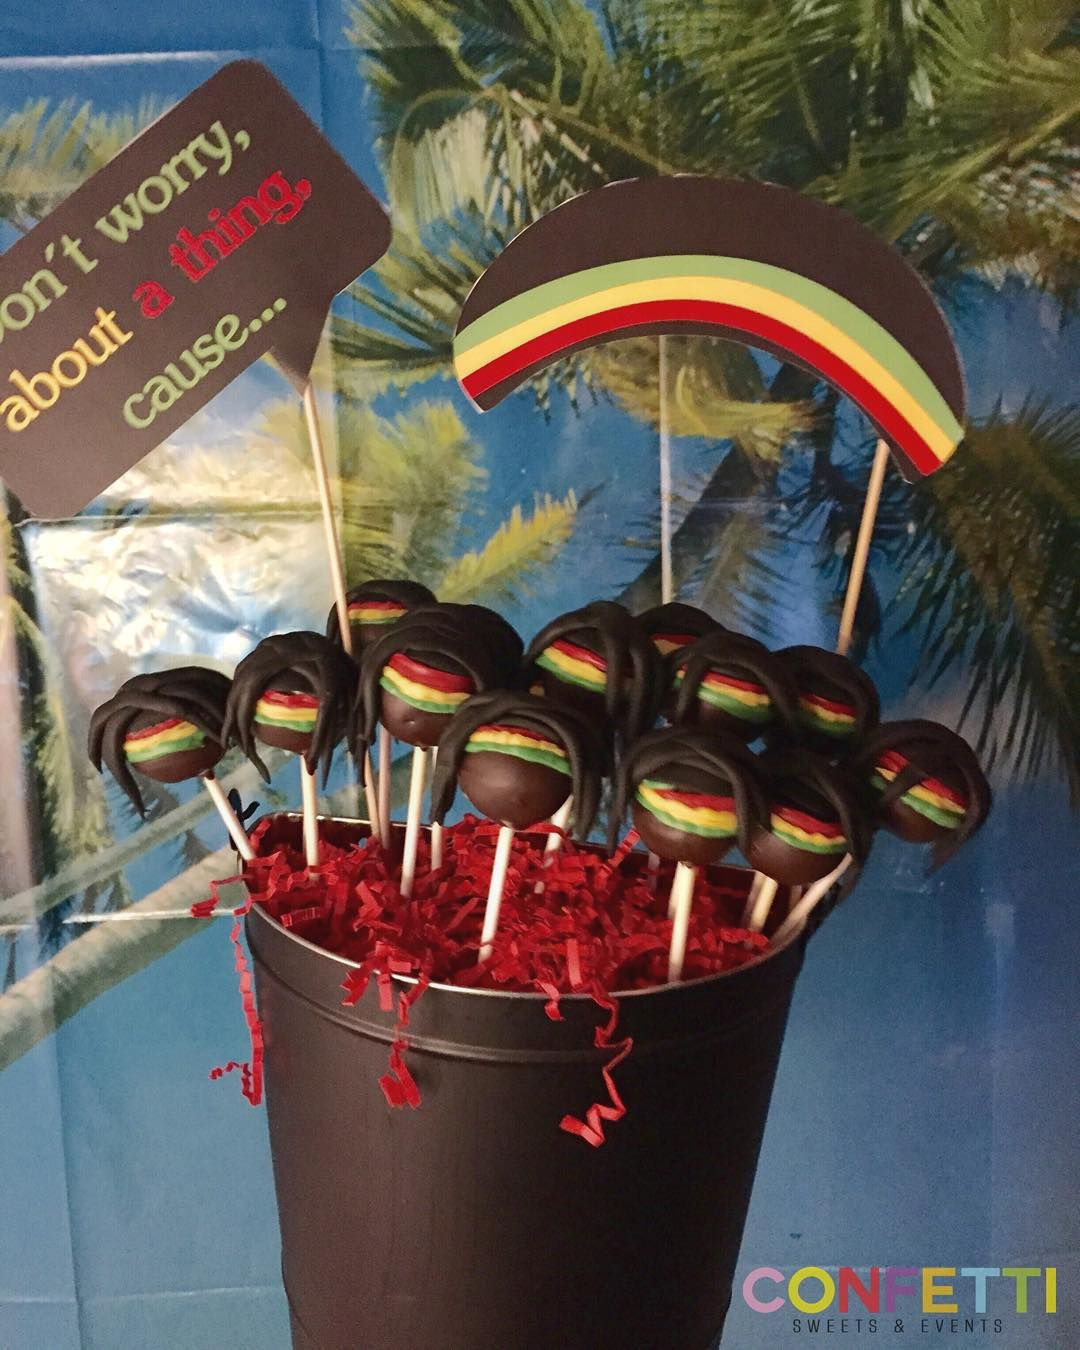 Google themes bob marley - Don T Worry About A Thing Cause Every Little Thing Gonna Be Alright Bob Marley Cake Pops The Party Was So Awesome You Did Such A Great Job